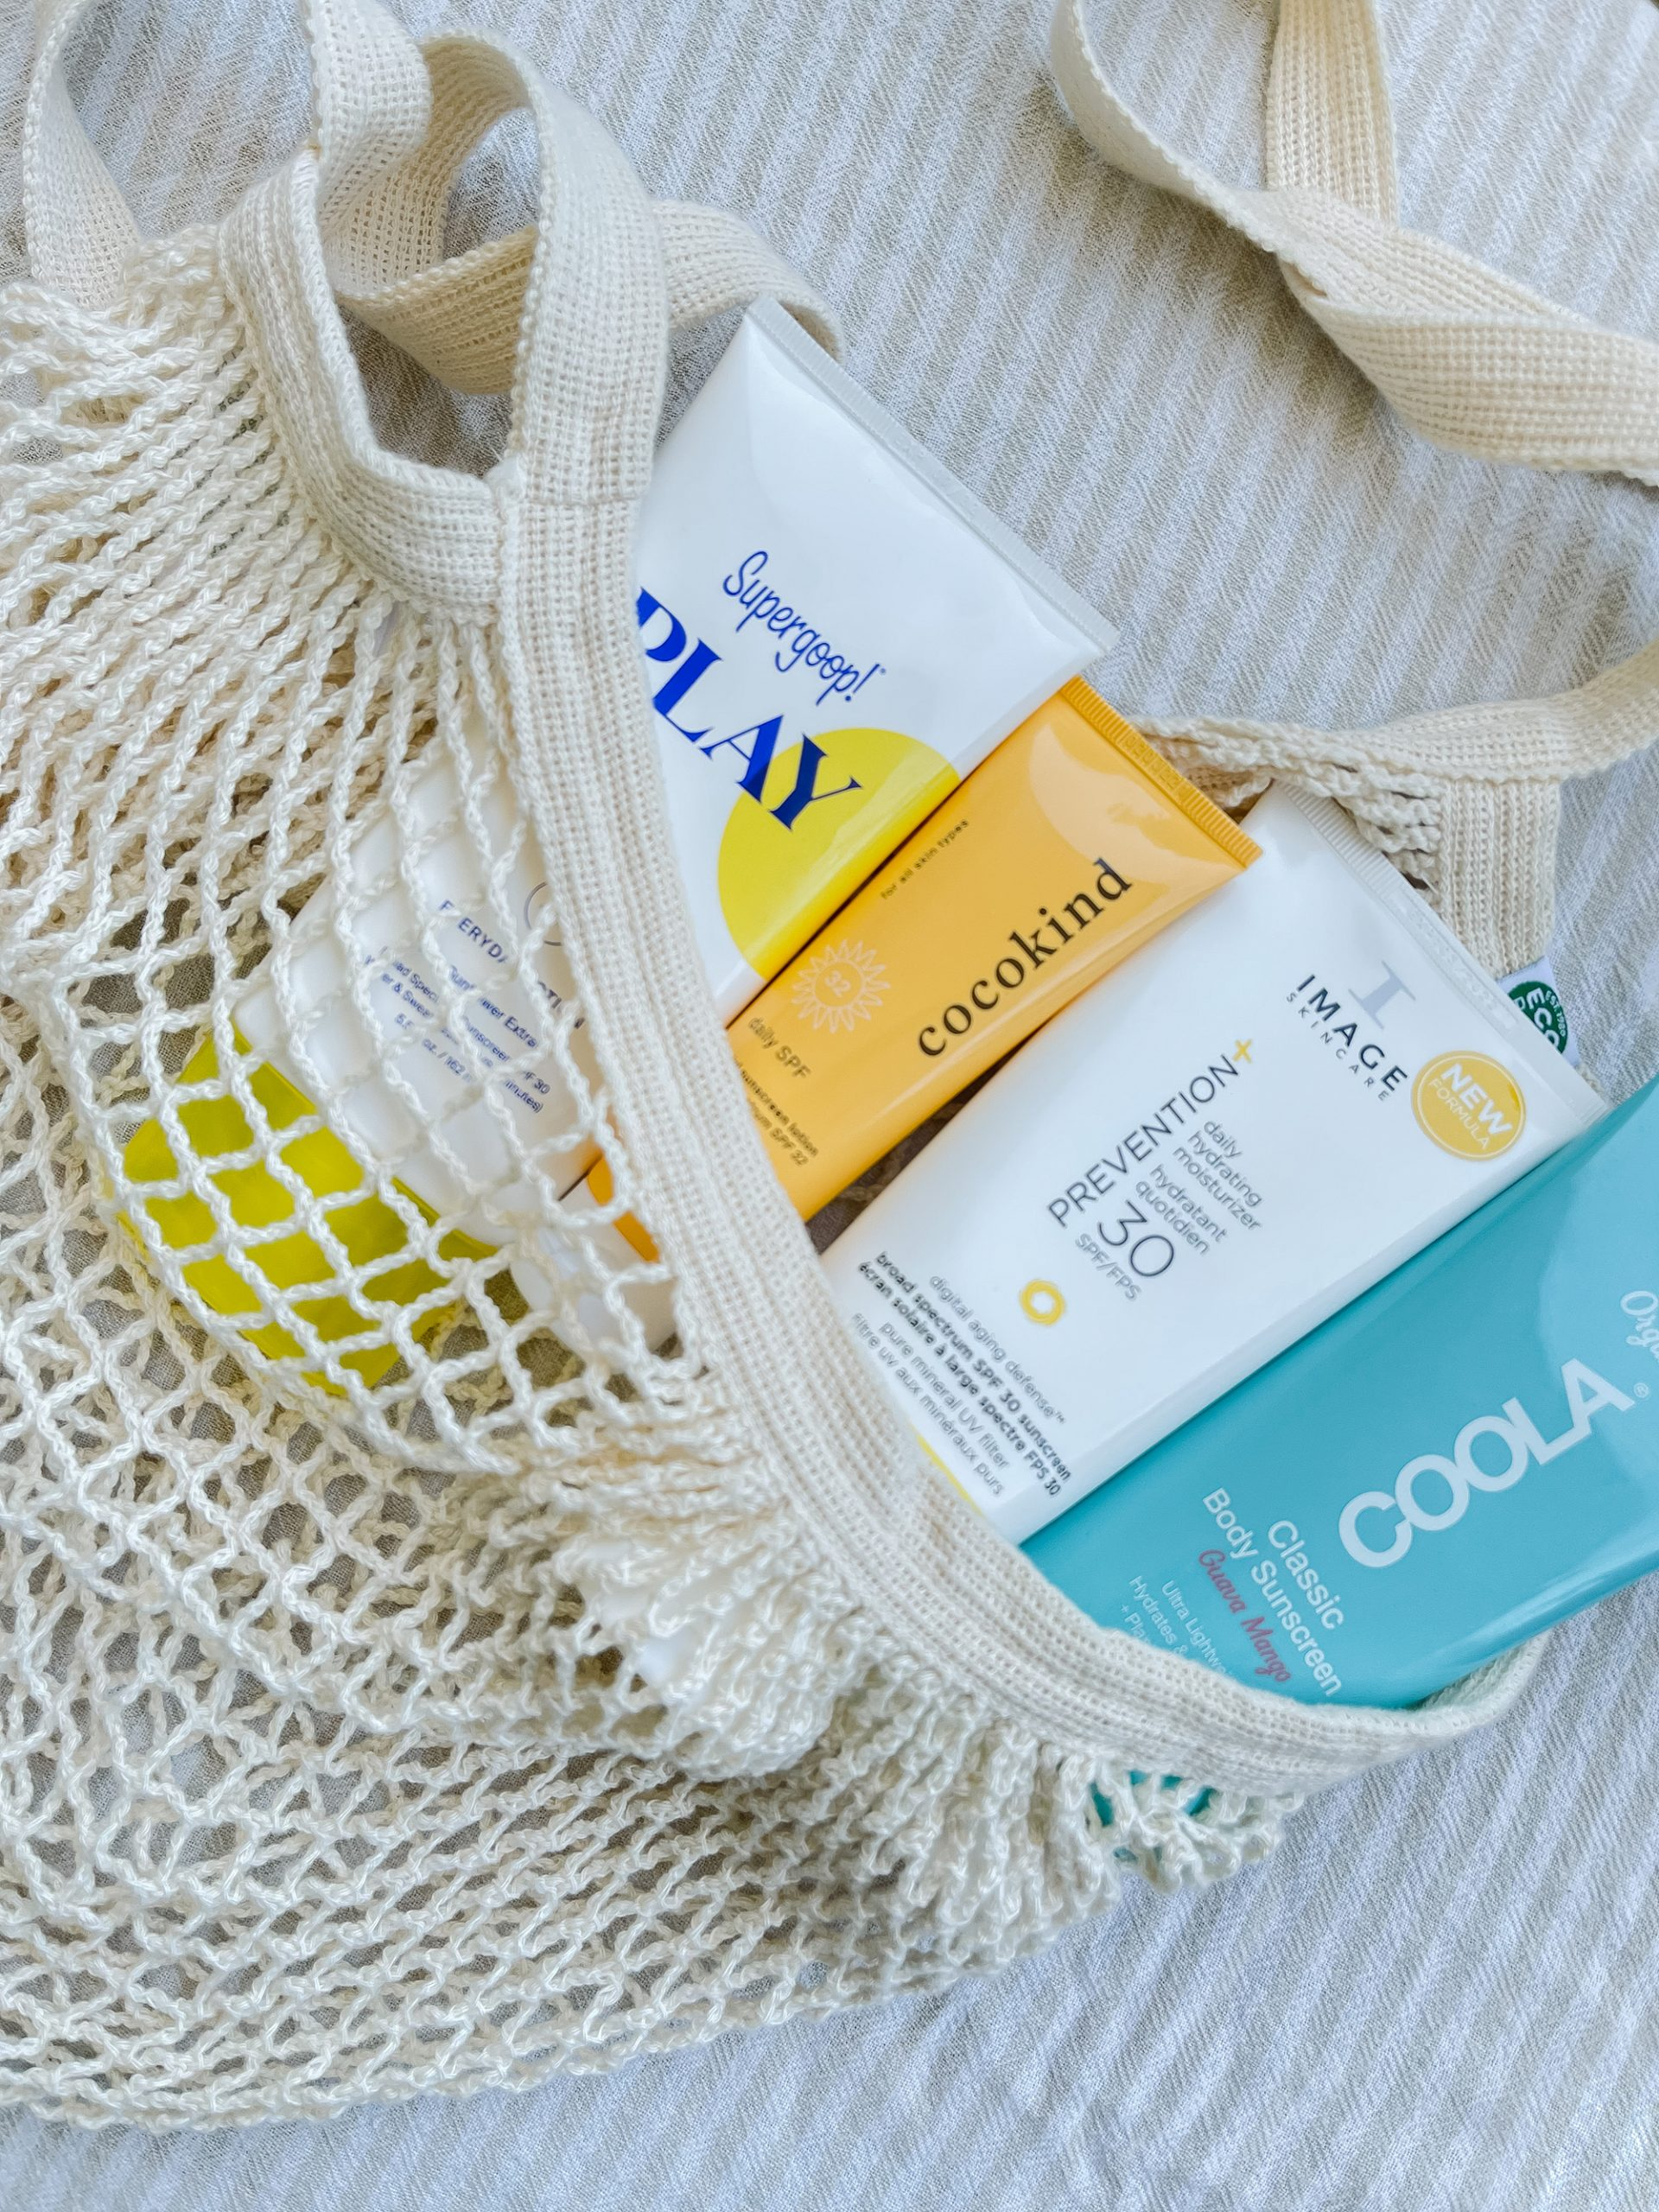 What Kind Of Sunscreen Should You Use?